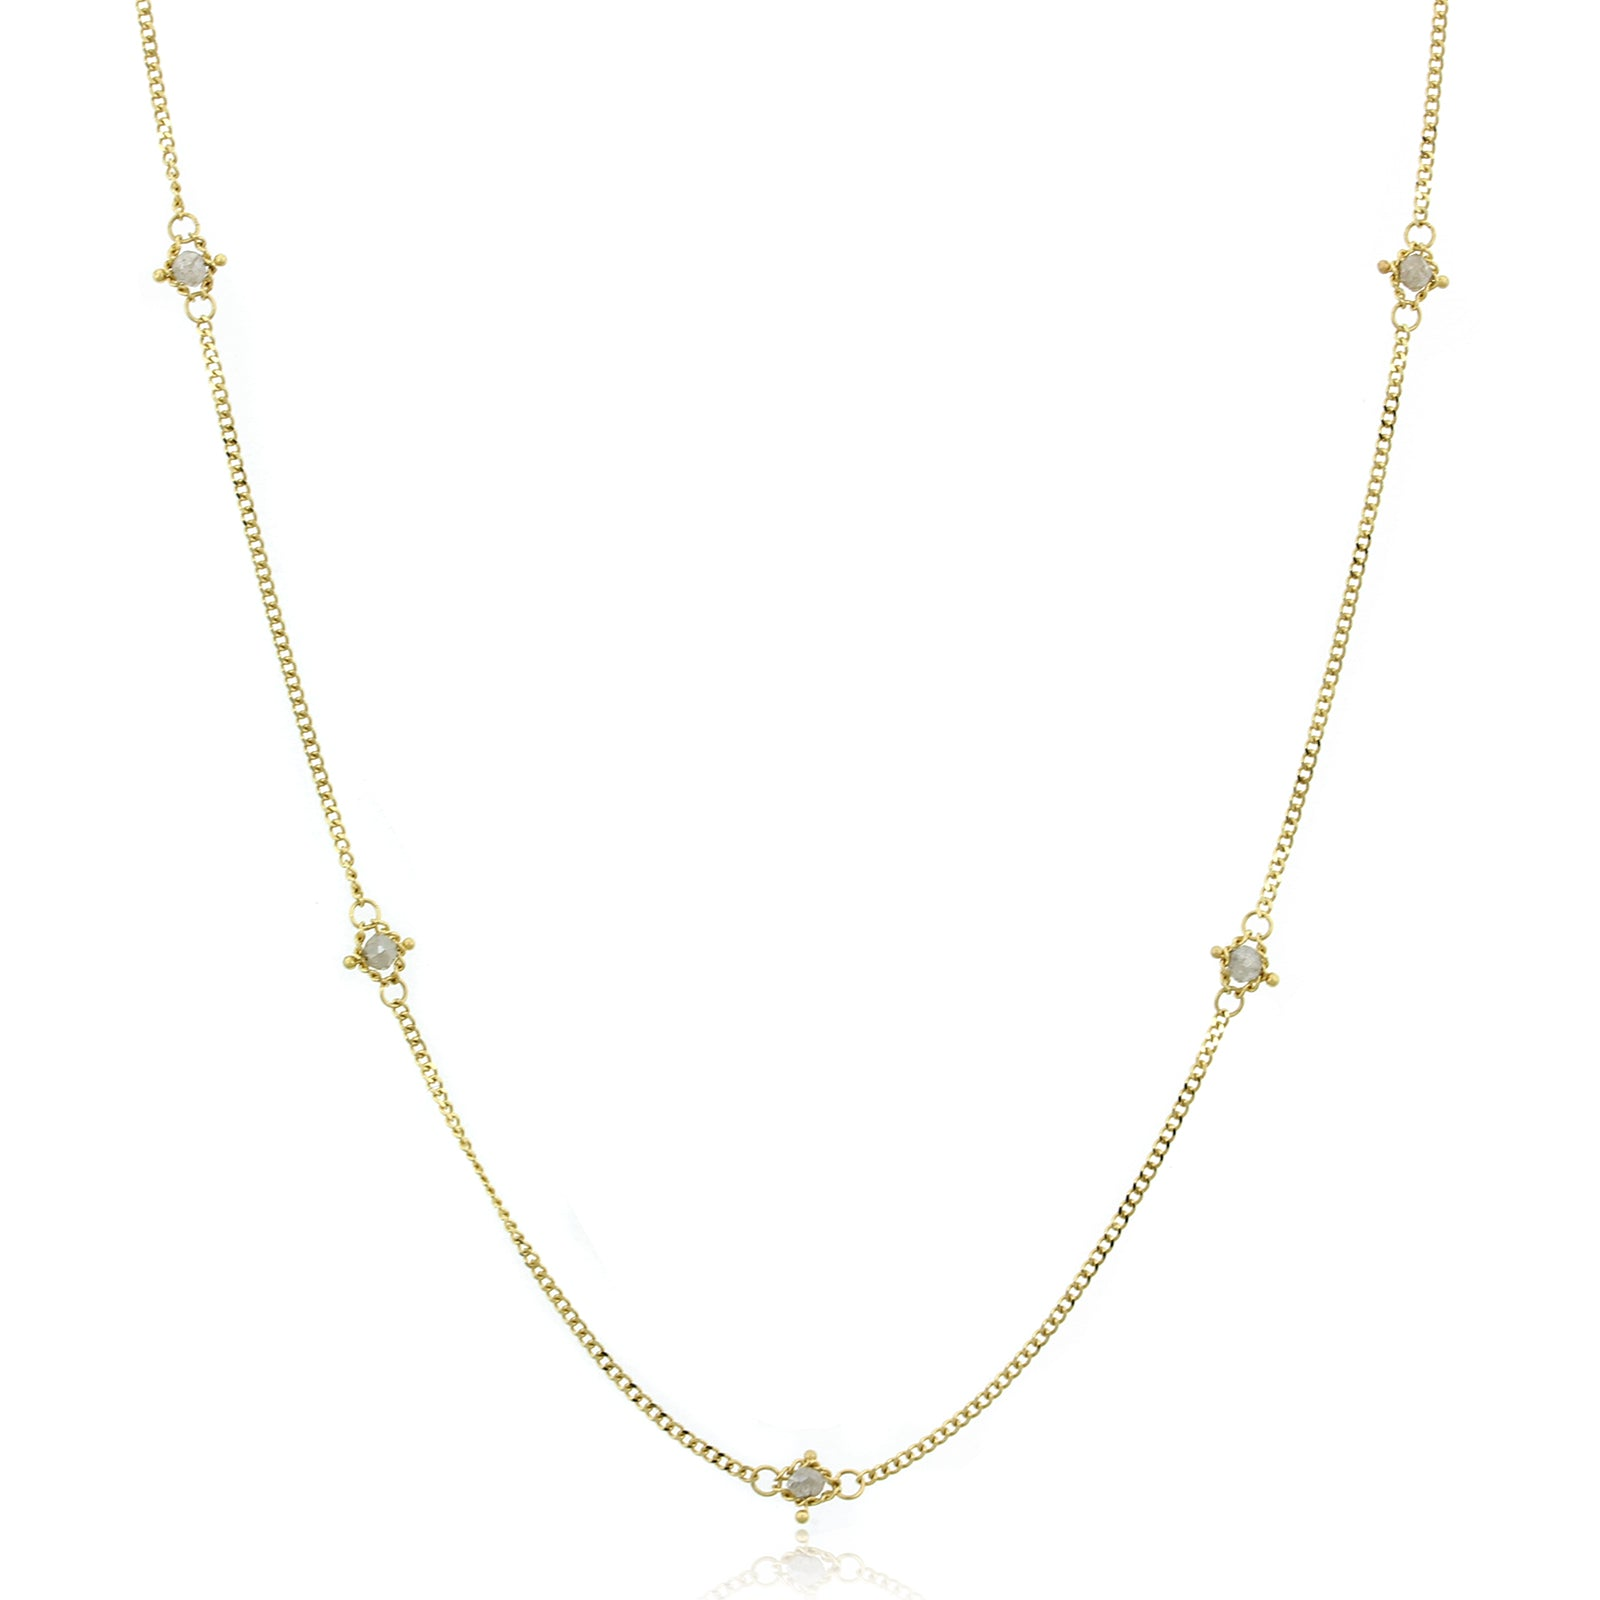 18K Yellow Gold Black Diamond Station Necklace